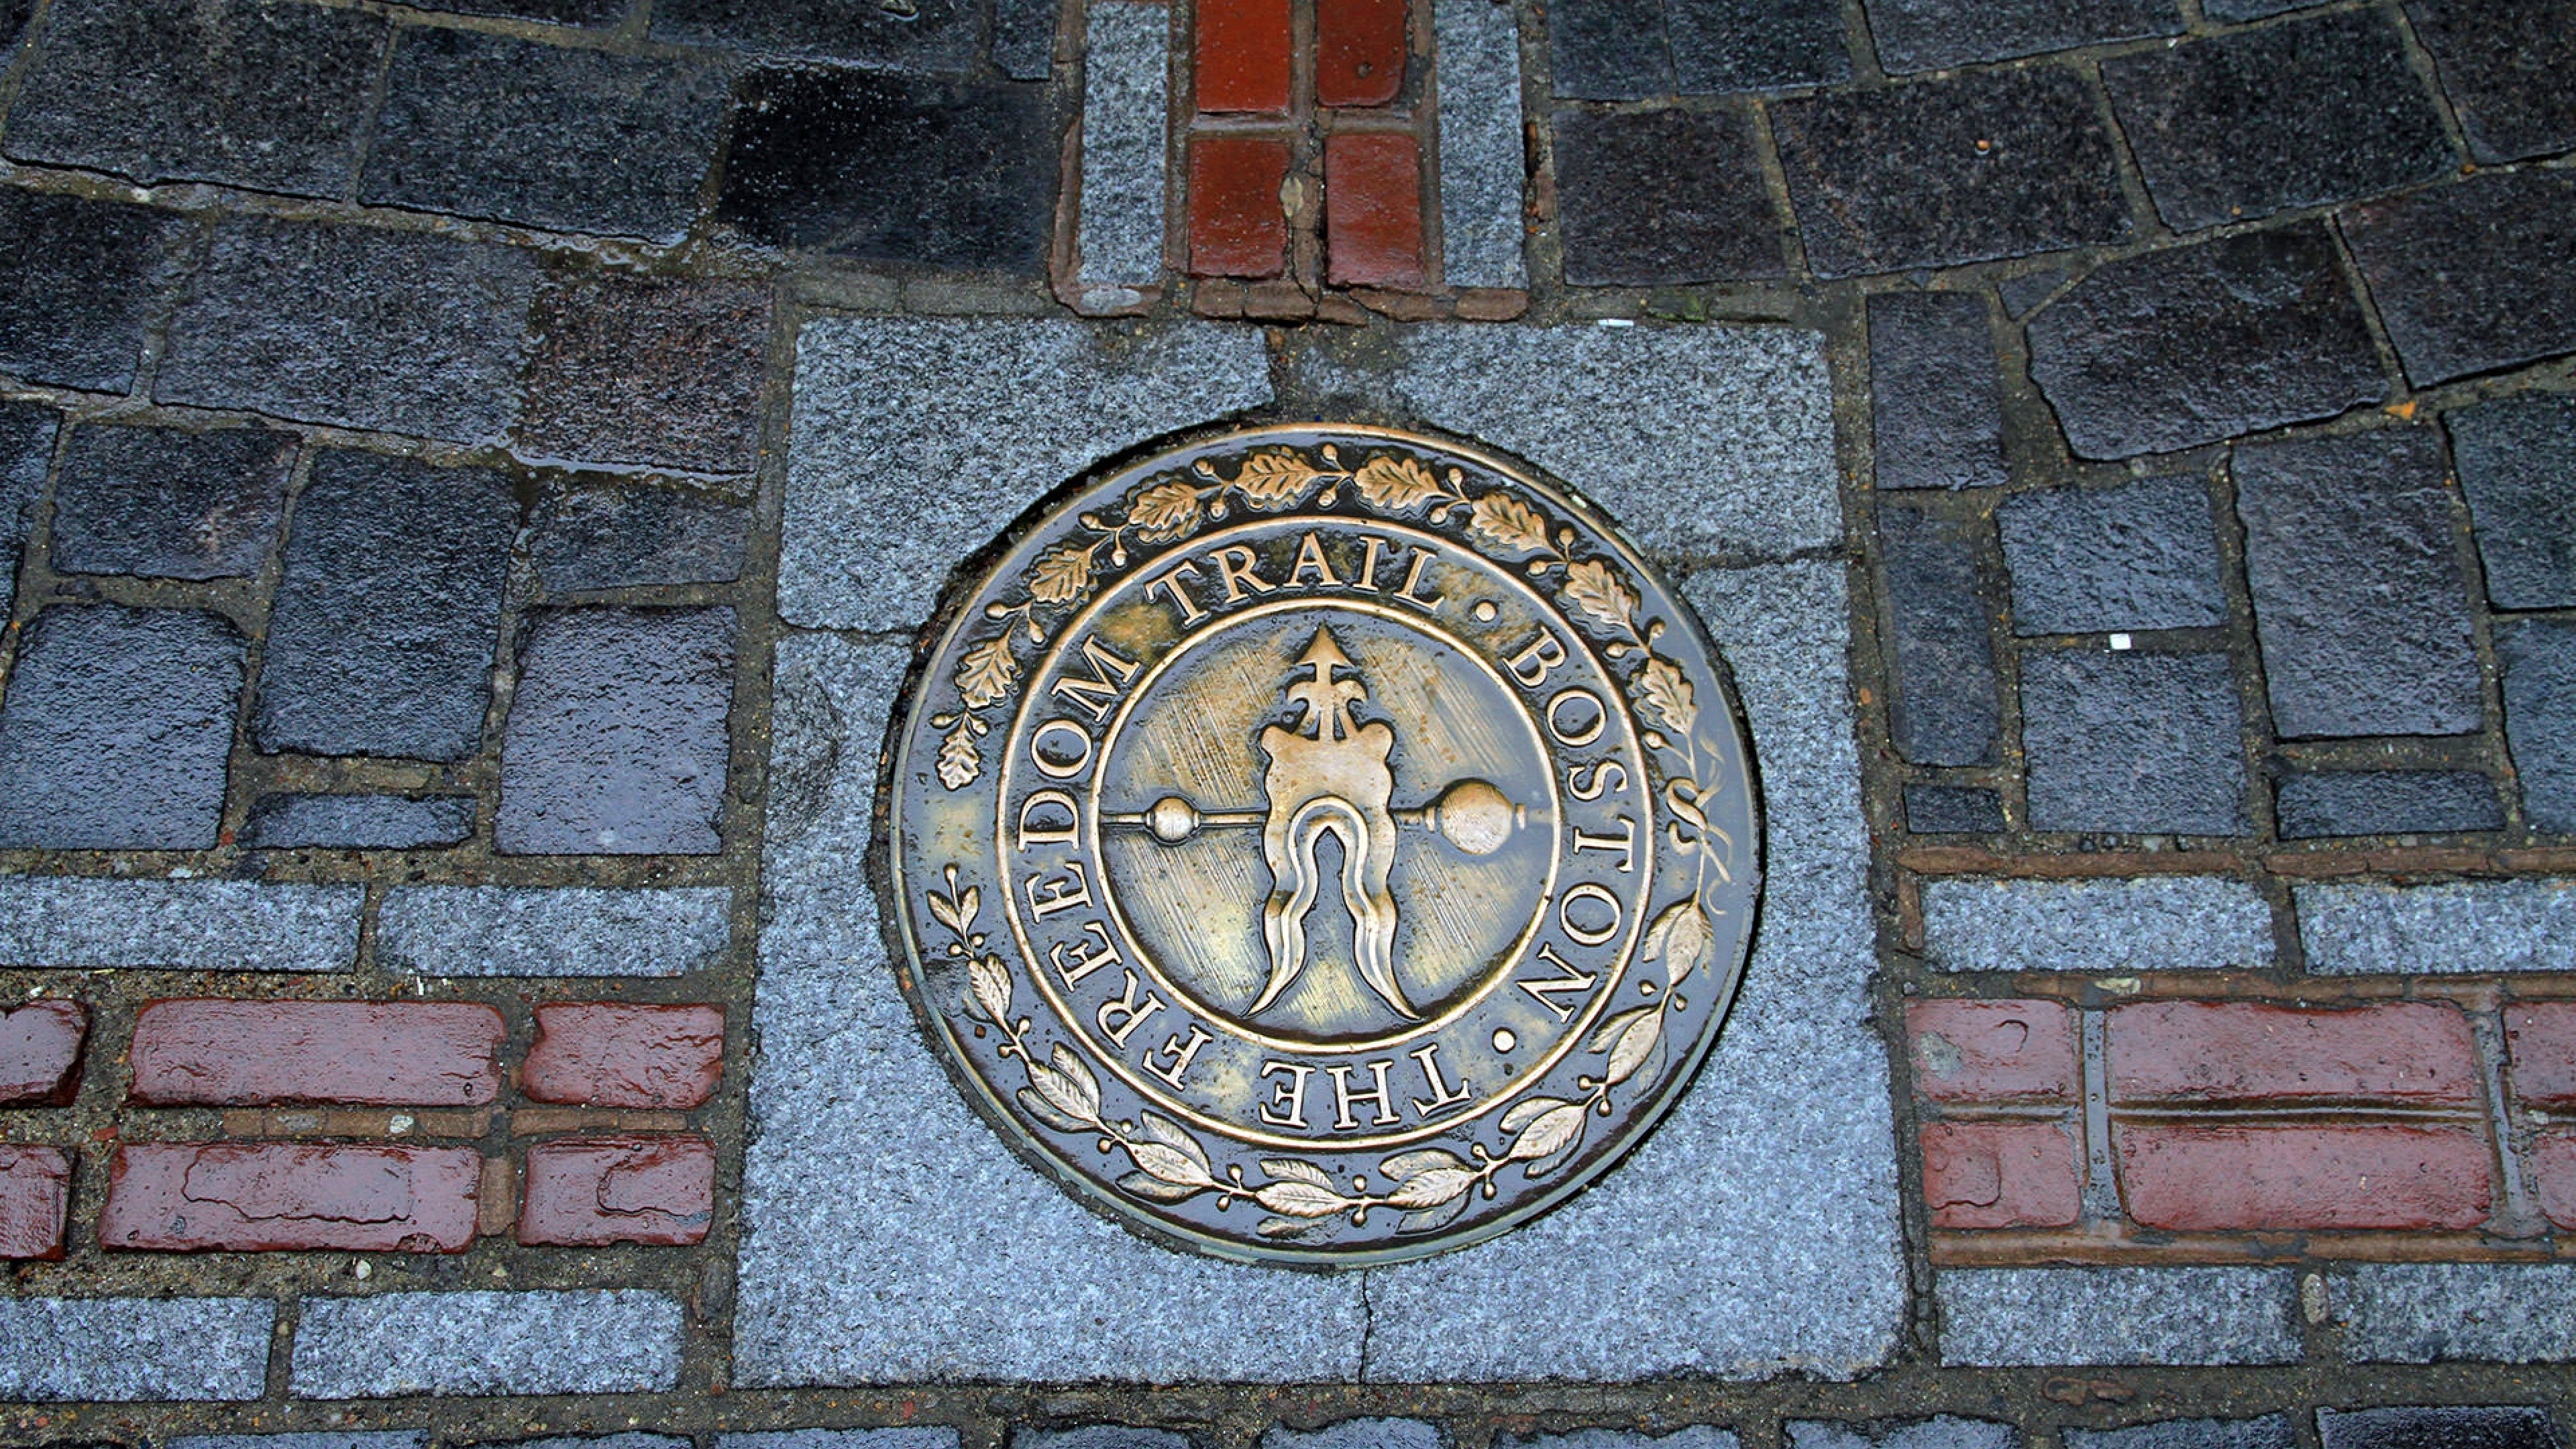 Freedom Trail marker in the sidewalk along the Freedom Trail